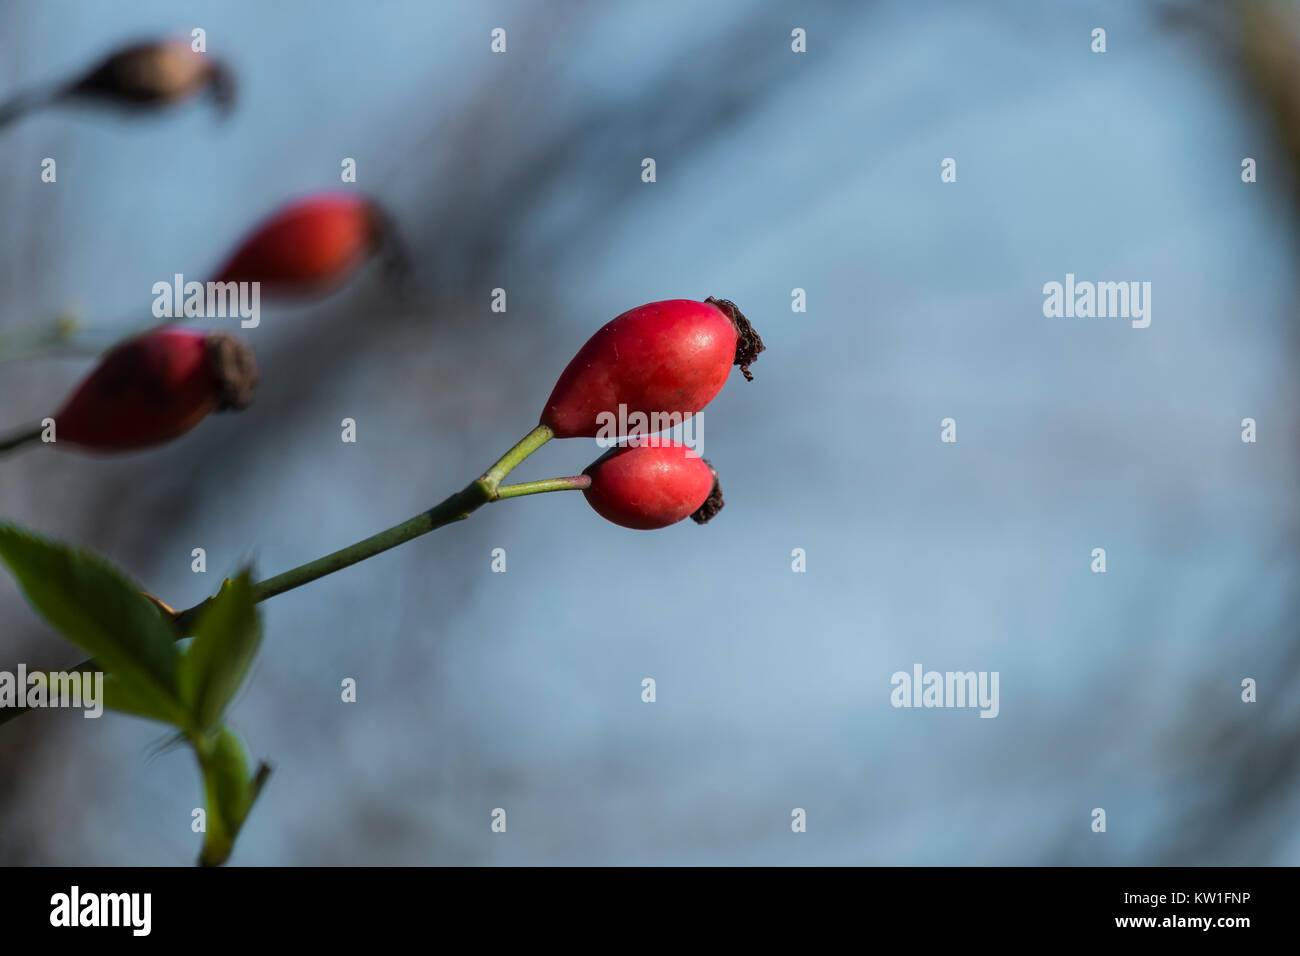 Red fetus of dog-rose (Rosa canina) - Stock Image